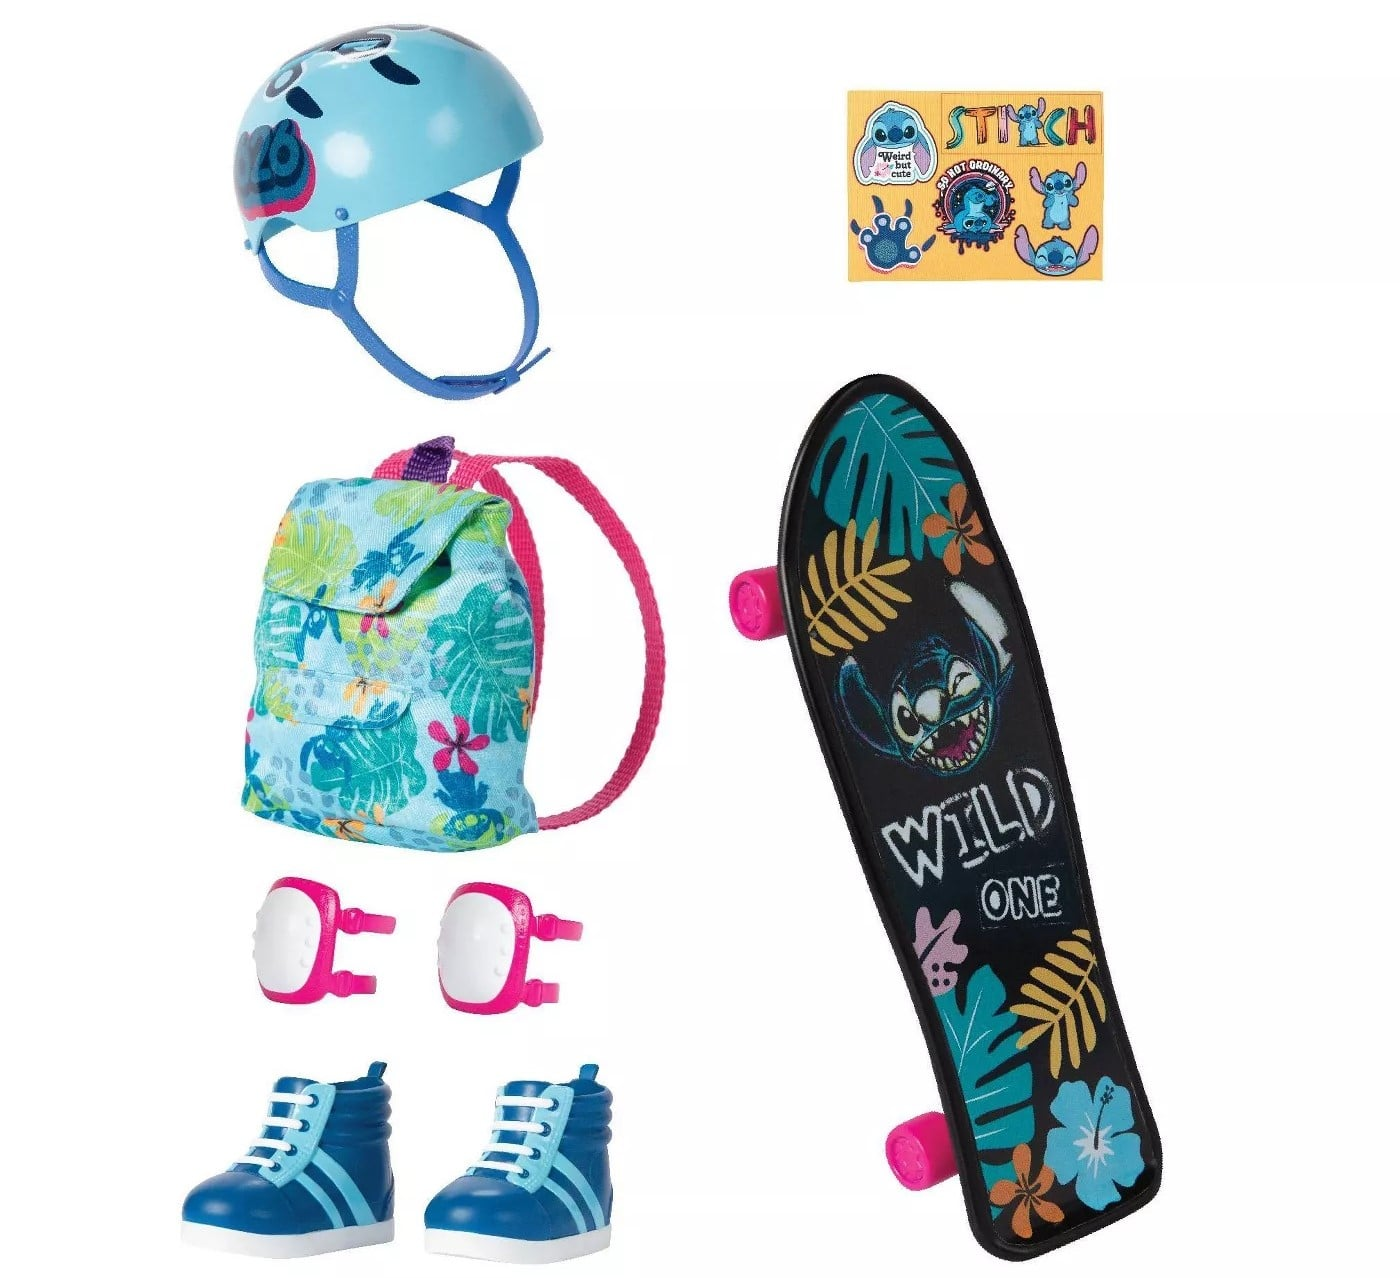 Disney ily 4EVER fashion doll collection is now available at Target 29